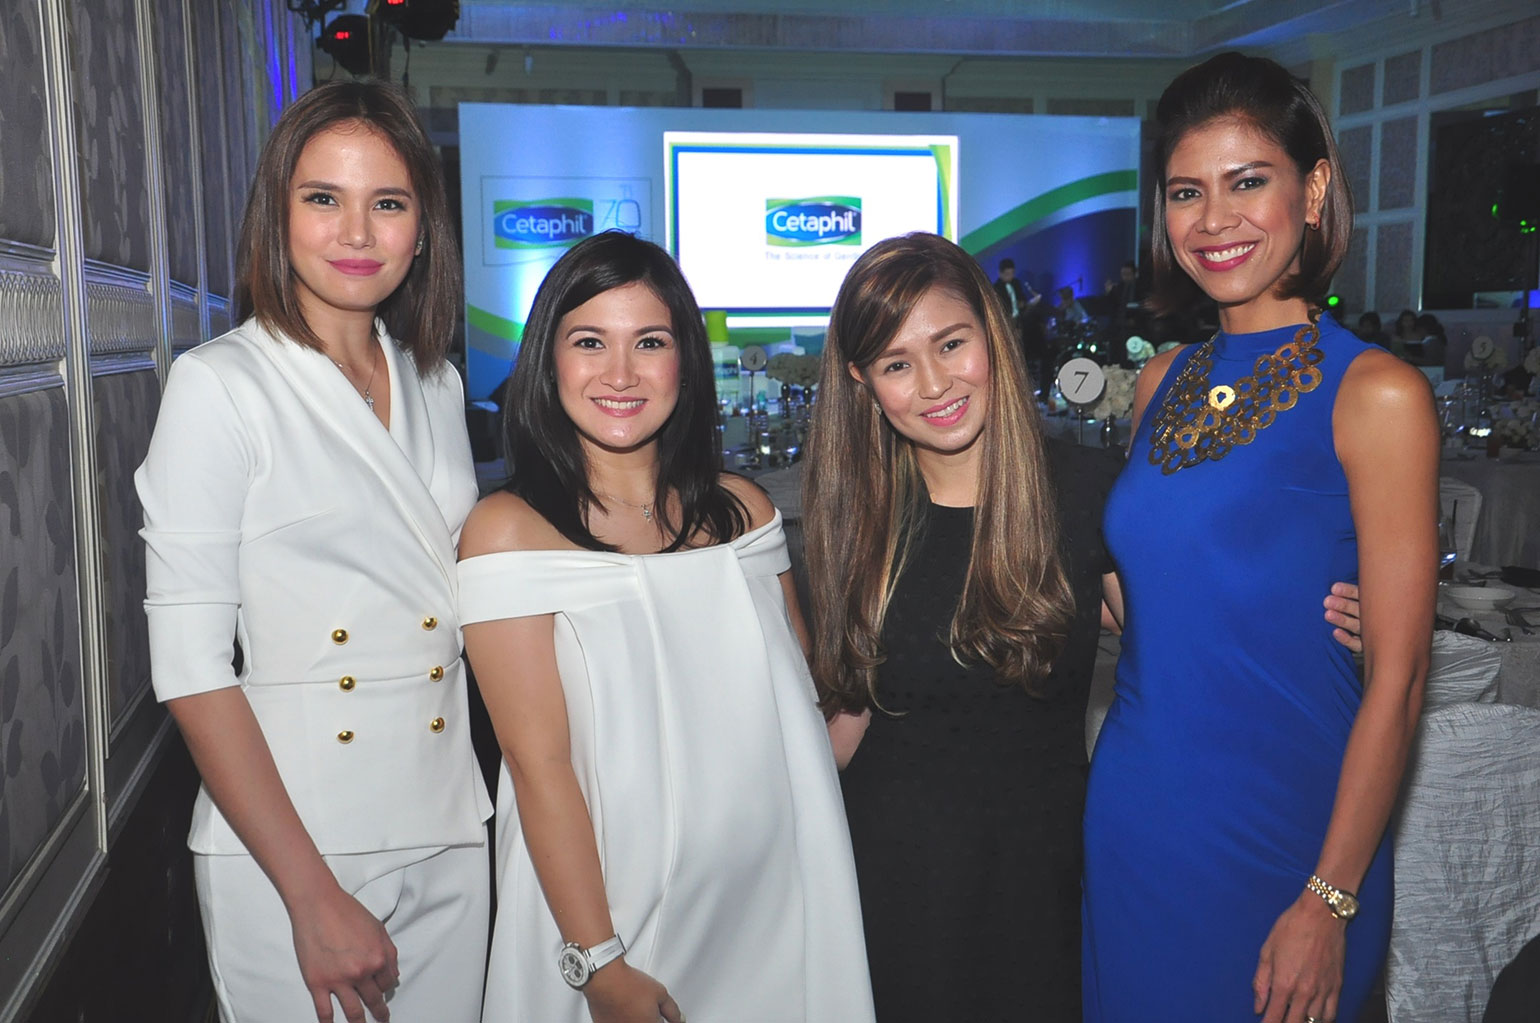 4 Celebrity-Moms-Isabel-Oli-Prats,-Camille-Prats,-Say-Alonzo-and-Suzi-Entrata